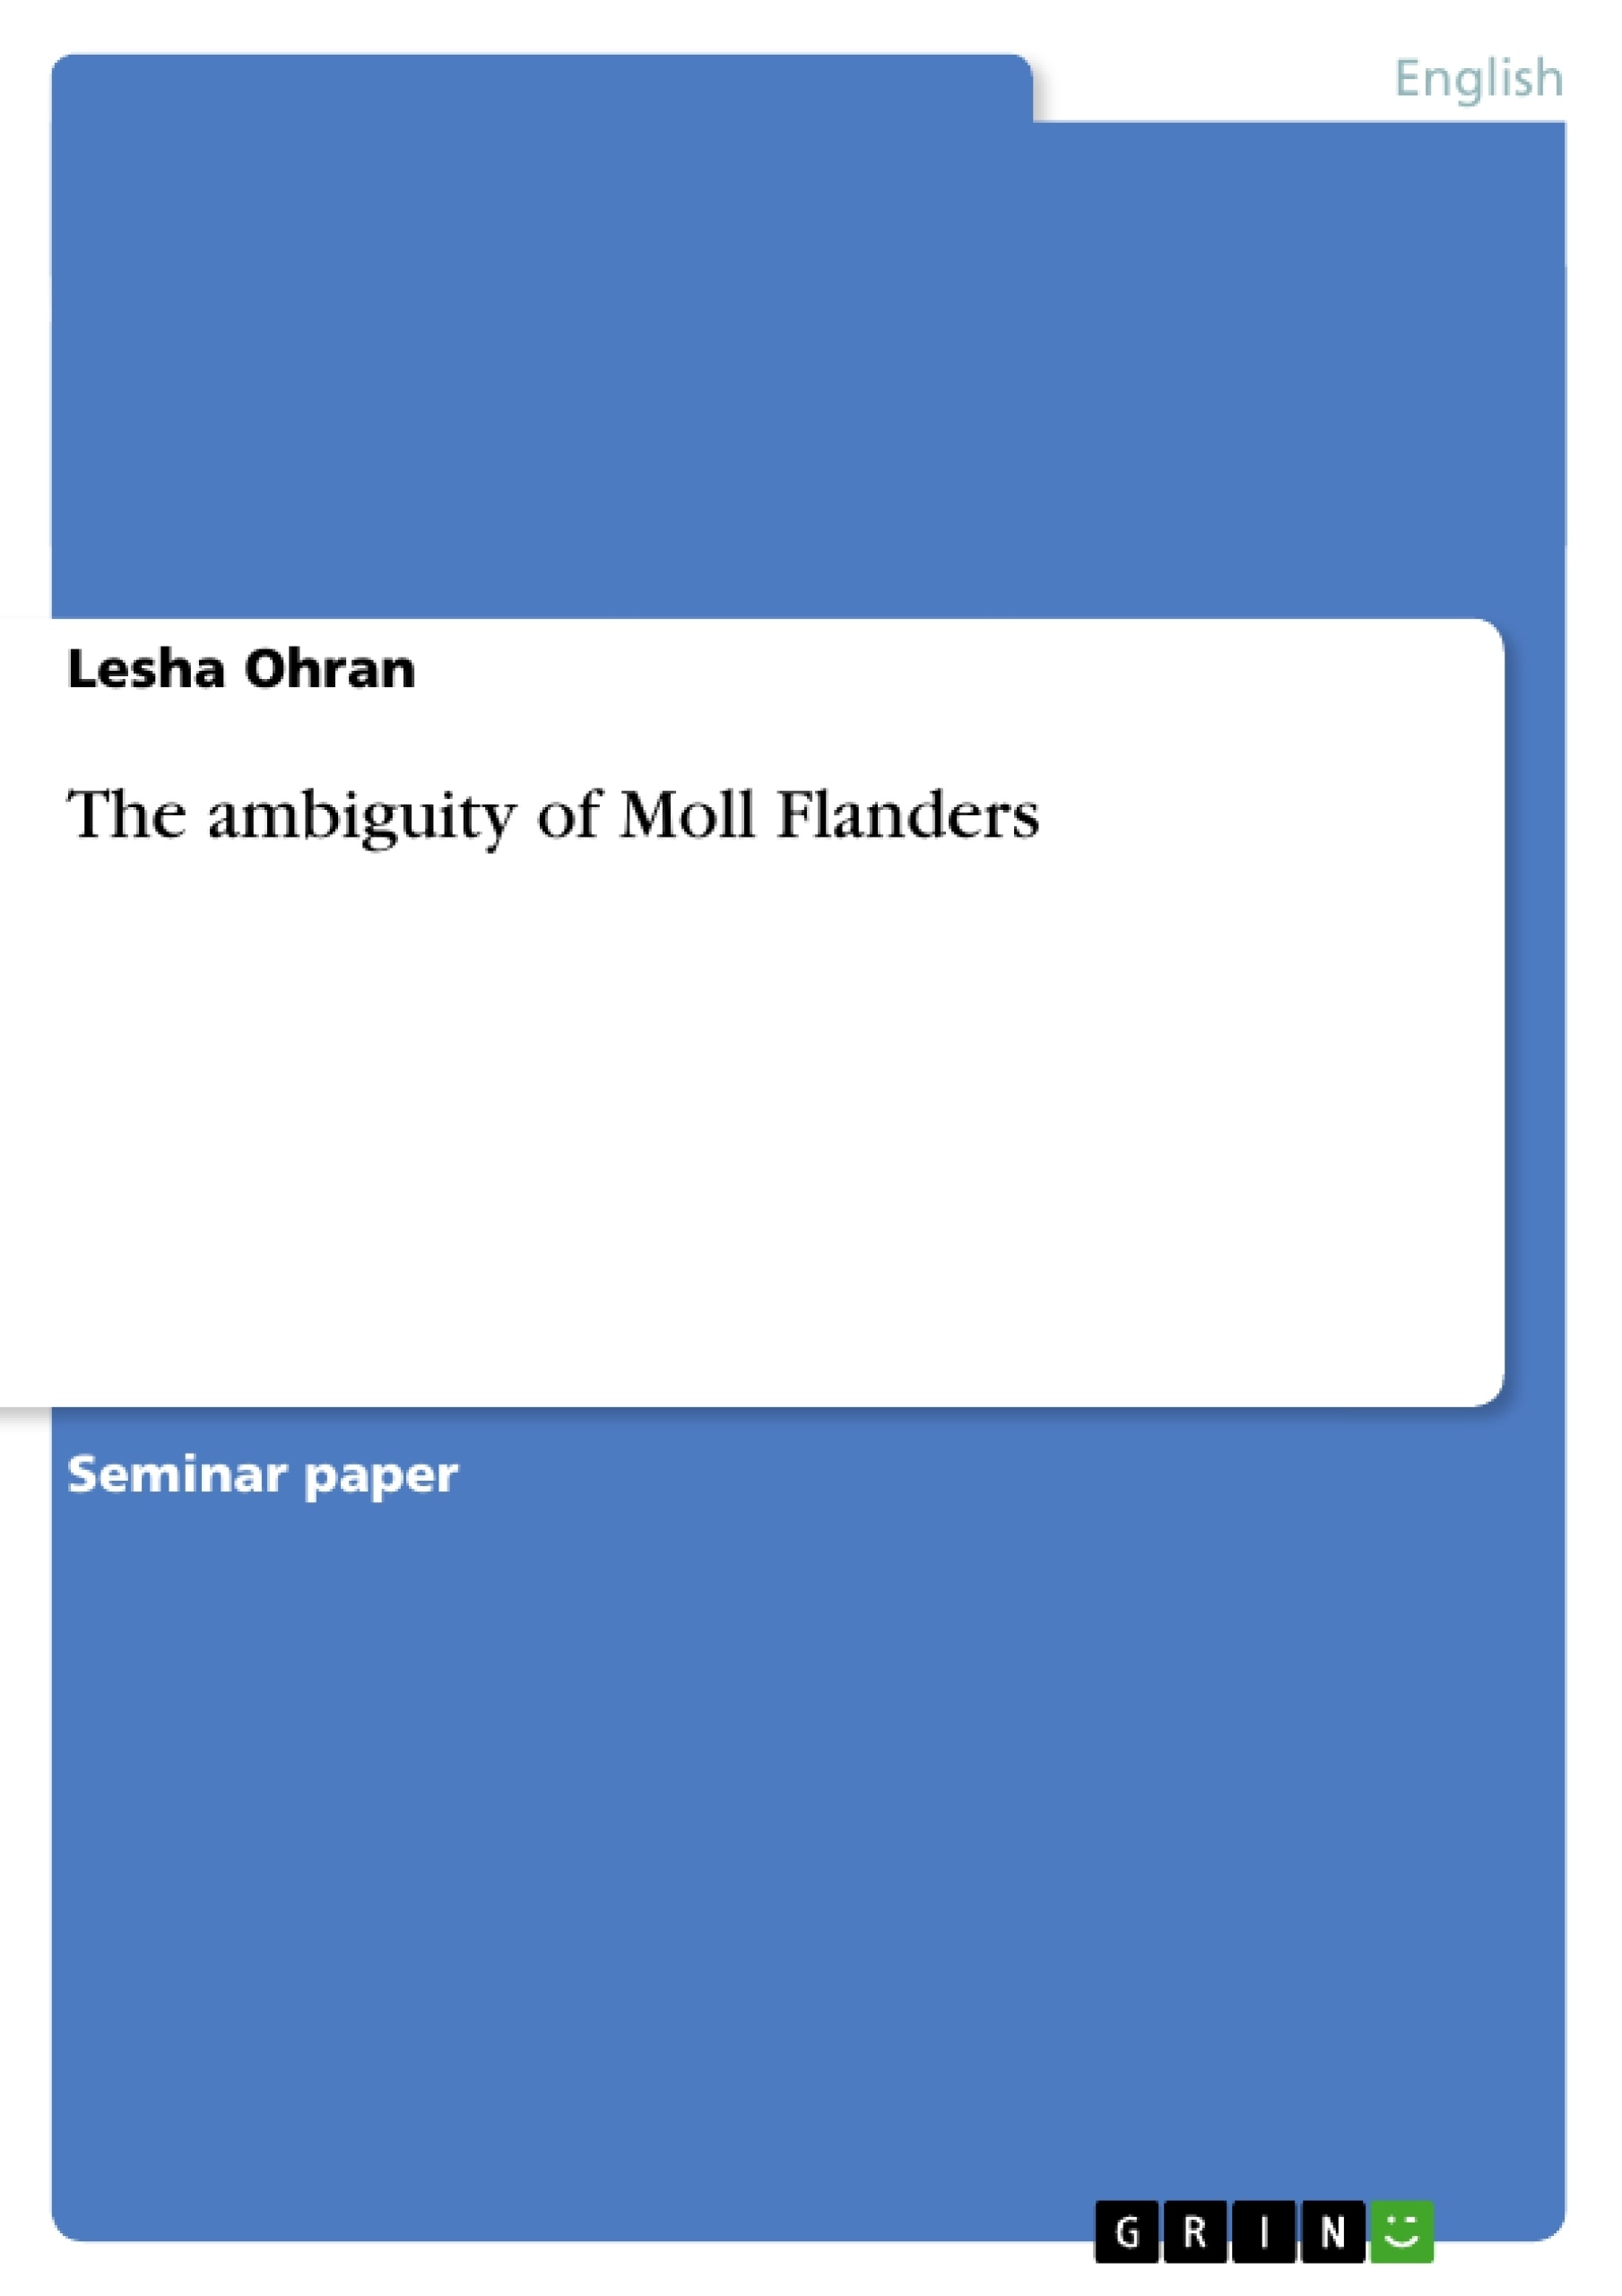 the ambiguity of moll flanders publish your master s thesis the ambiguity of moll flanders publish your master s thesis bachelor s thesis essay or term paper